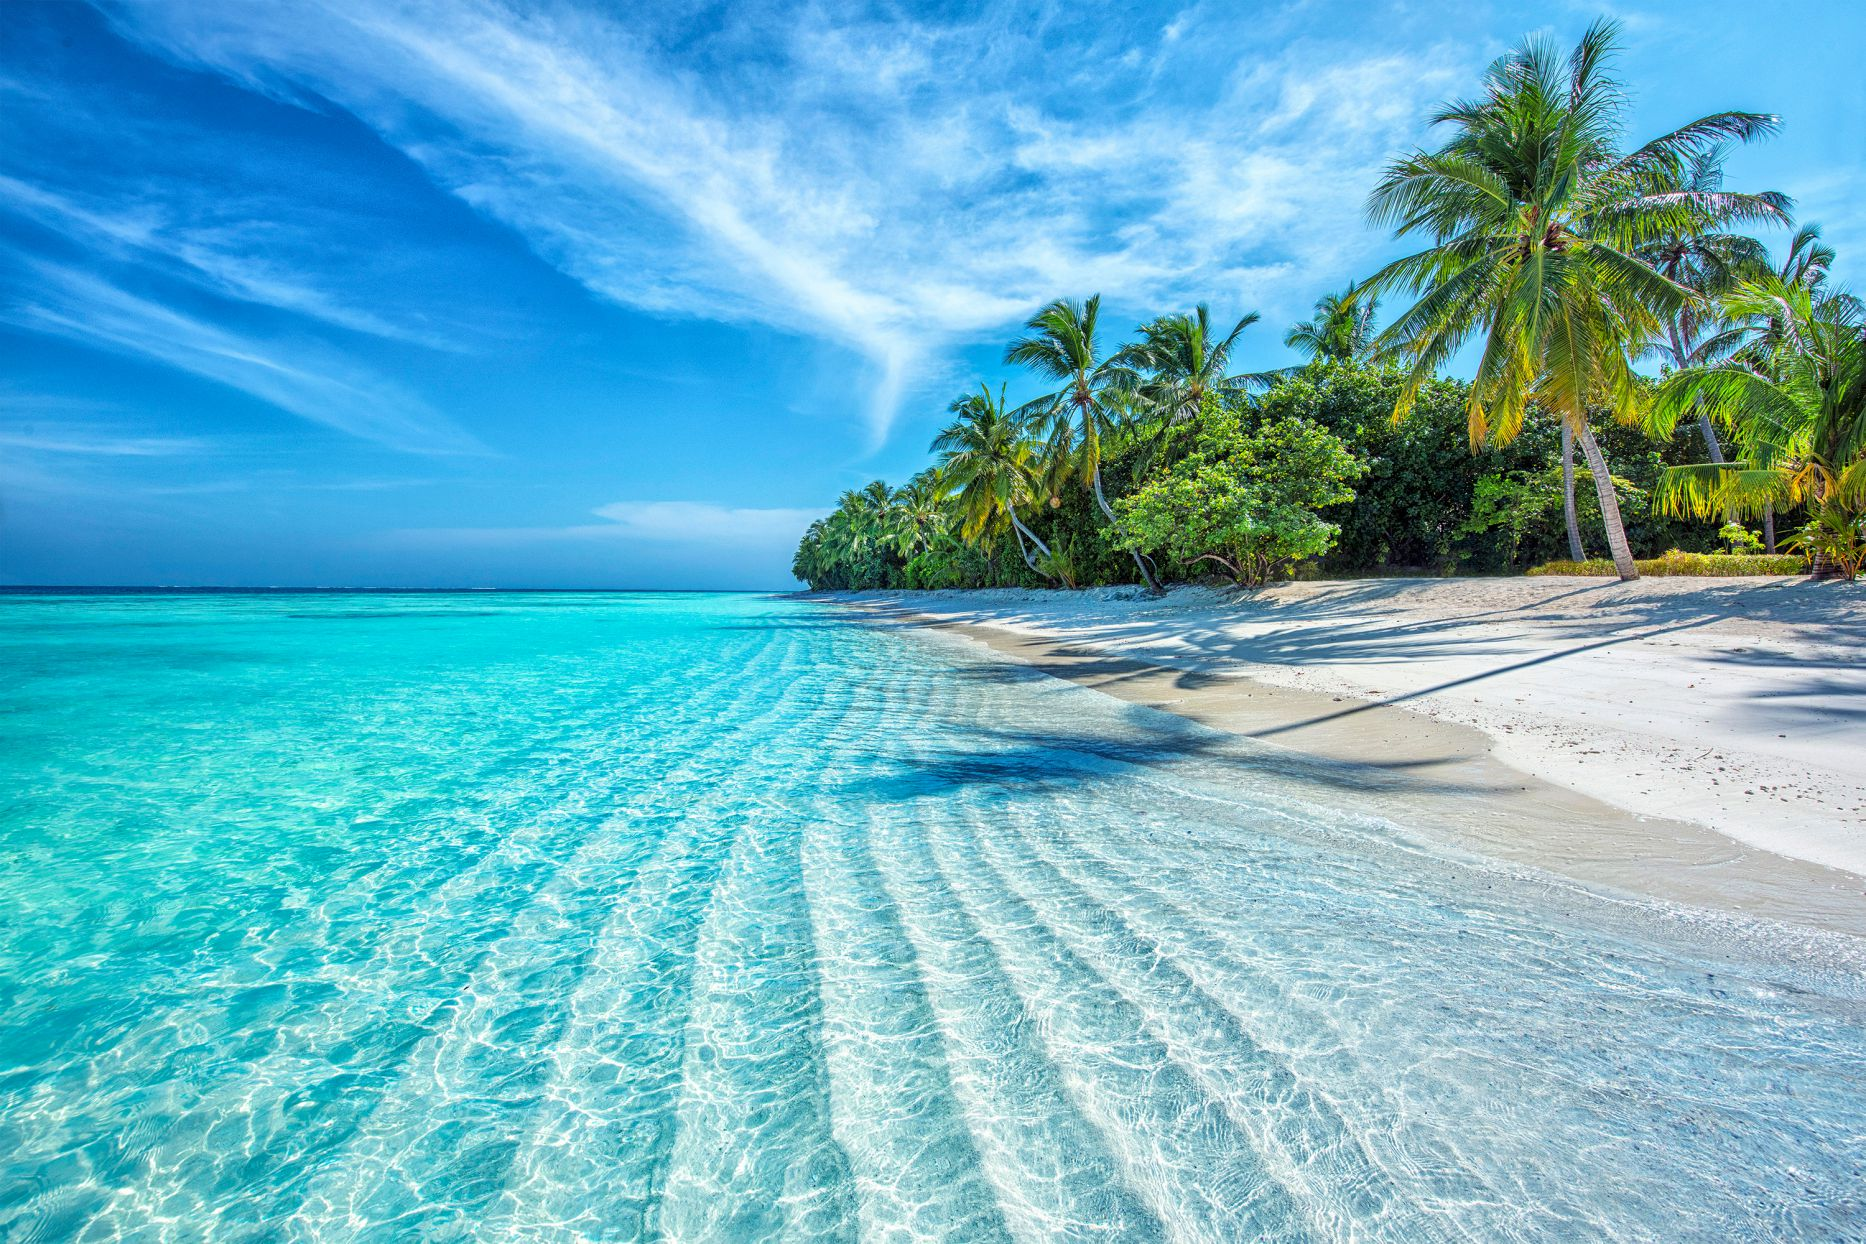 Travel to Maldives during covid